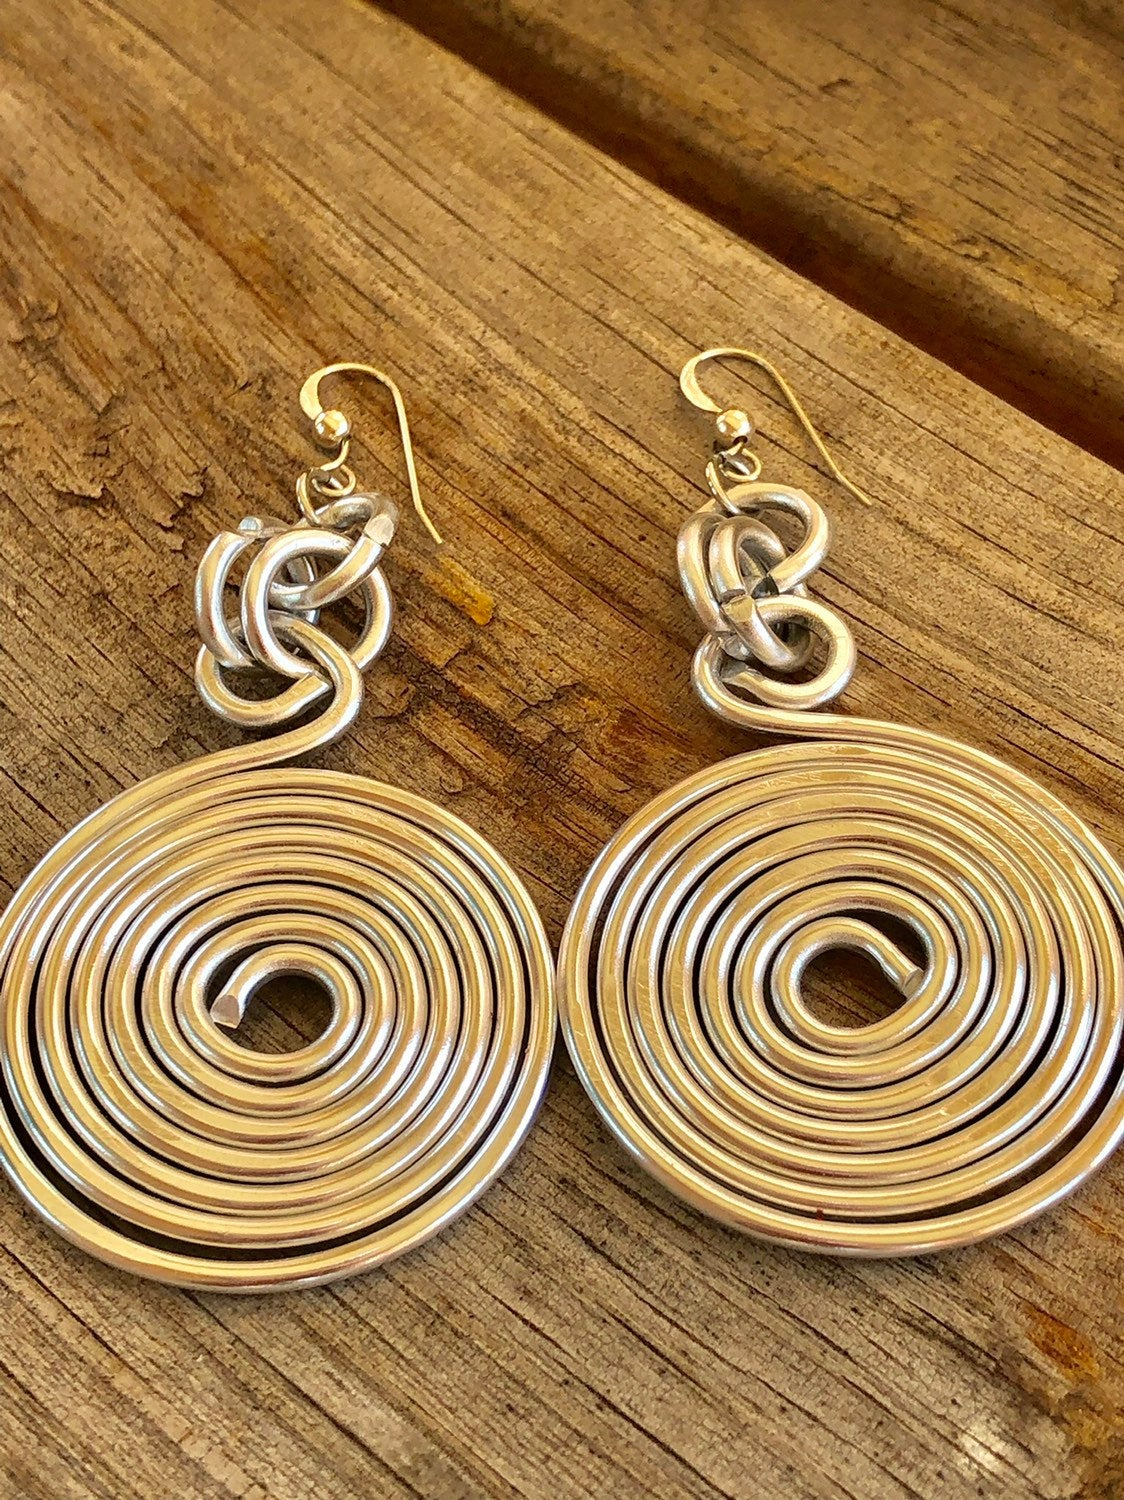 Round silver aluminum wire earrings with sterling silver ear wire